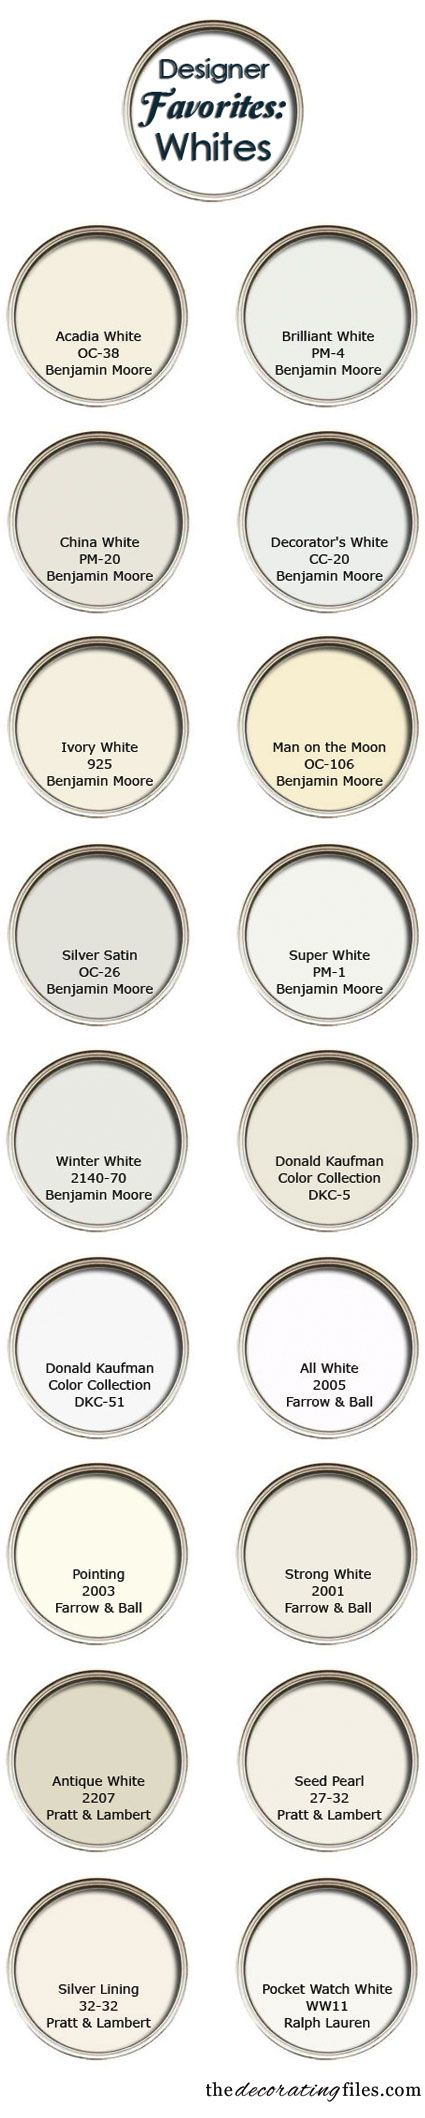 White Paint Colors: Favorite Picks from Designers white paint colors